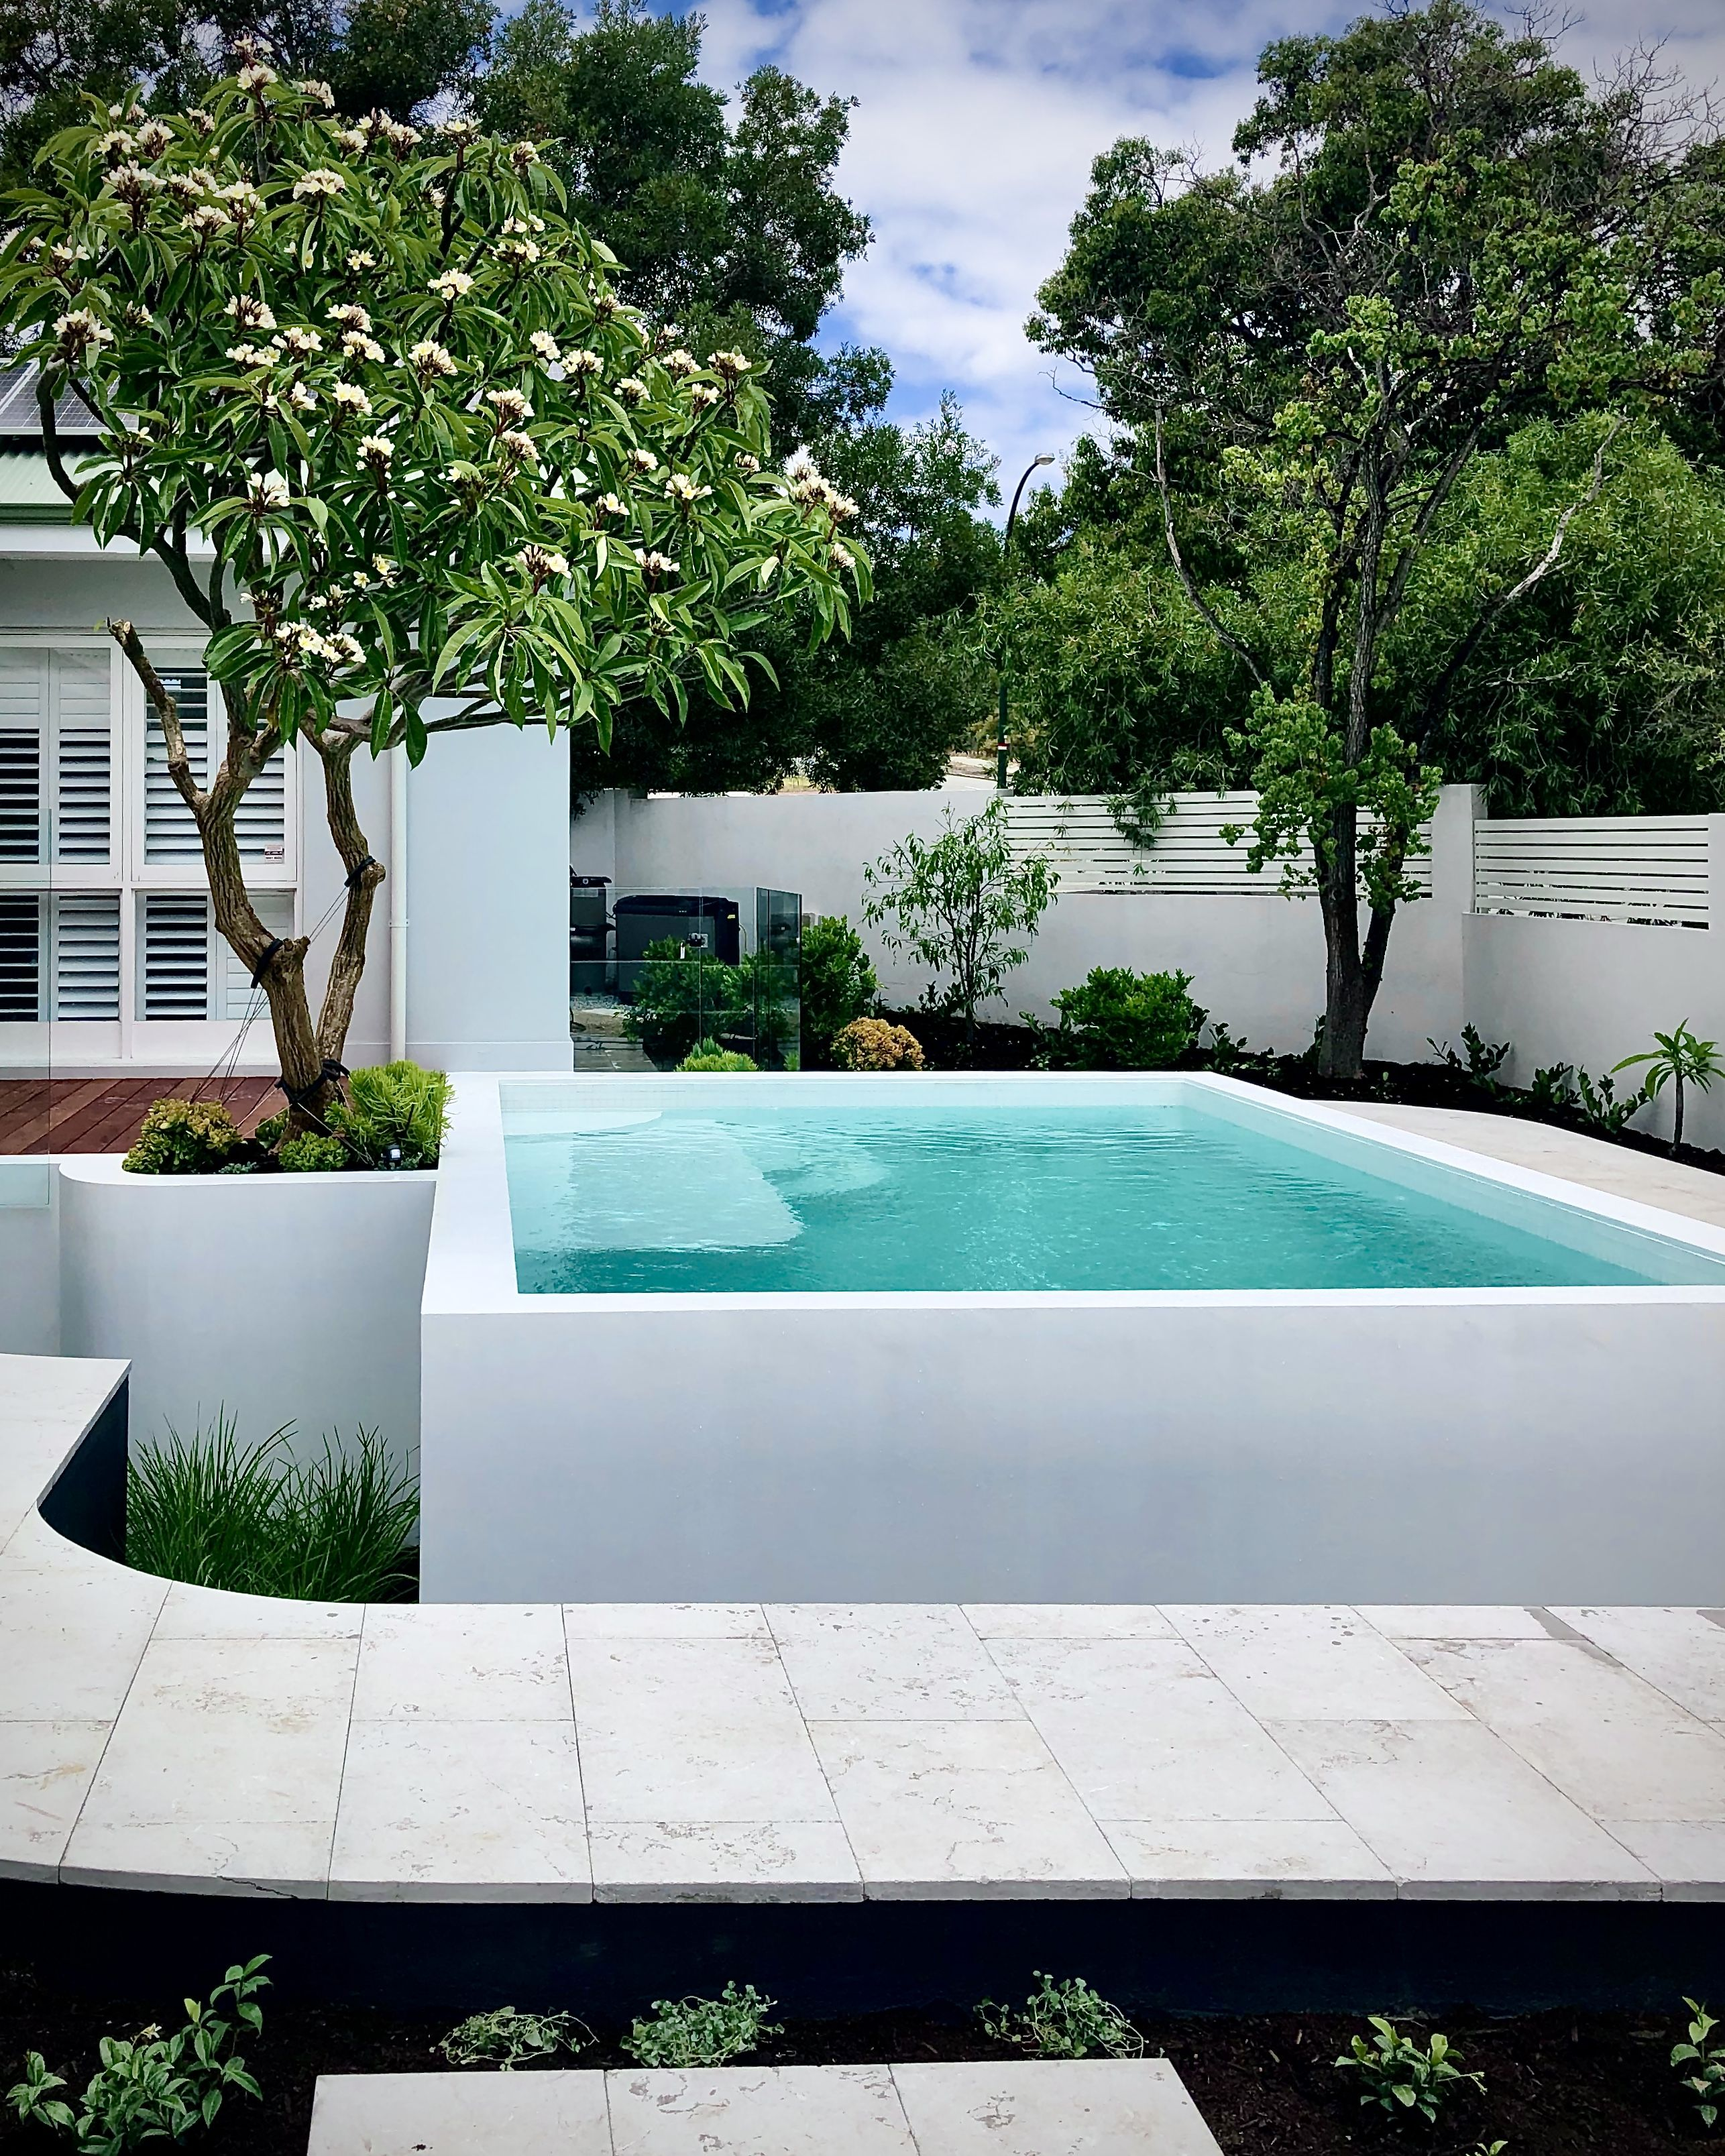 Fully Tiled White Pool With Microcement Render Design By Tristanpeirce Landscape Architecture Perth Western Aus Garden Pool Design Garden Pool Pool Landscaping